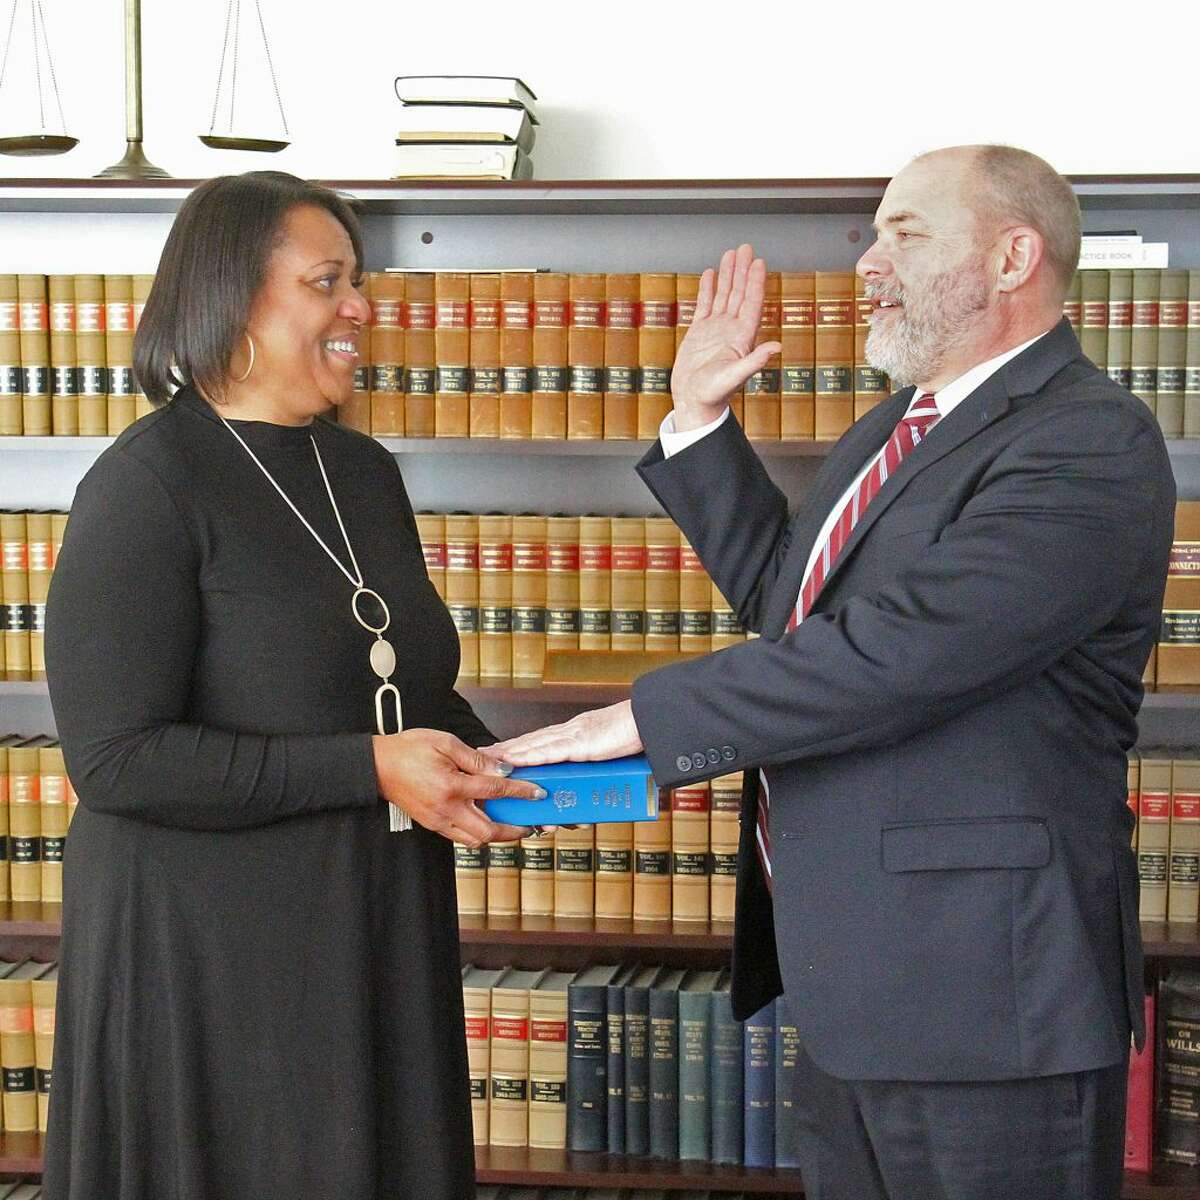 Northern Fairfield County Probate Judge Daniel O'Grady was re-elected for another four year term on Nov. 6, 2018. He receives the oath of office by Chief Clerk Jacqueline Buckle.